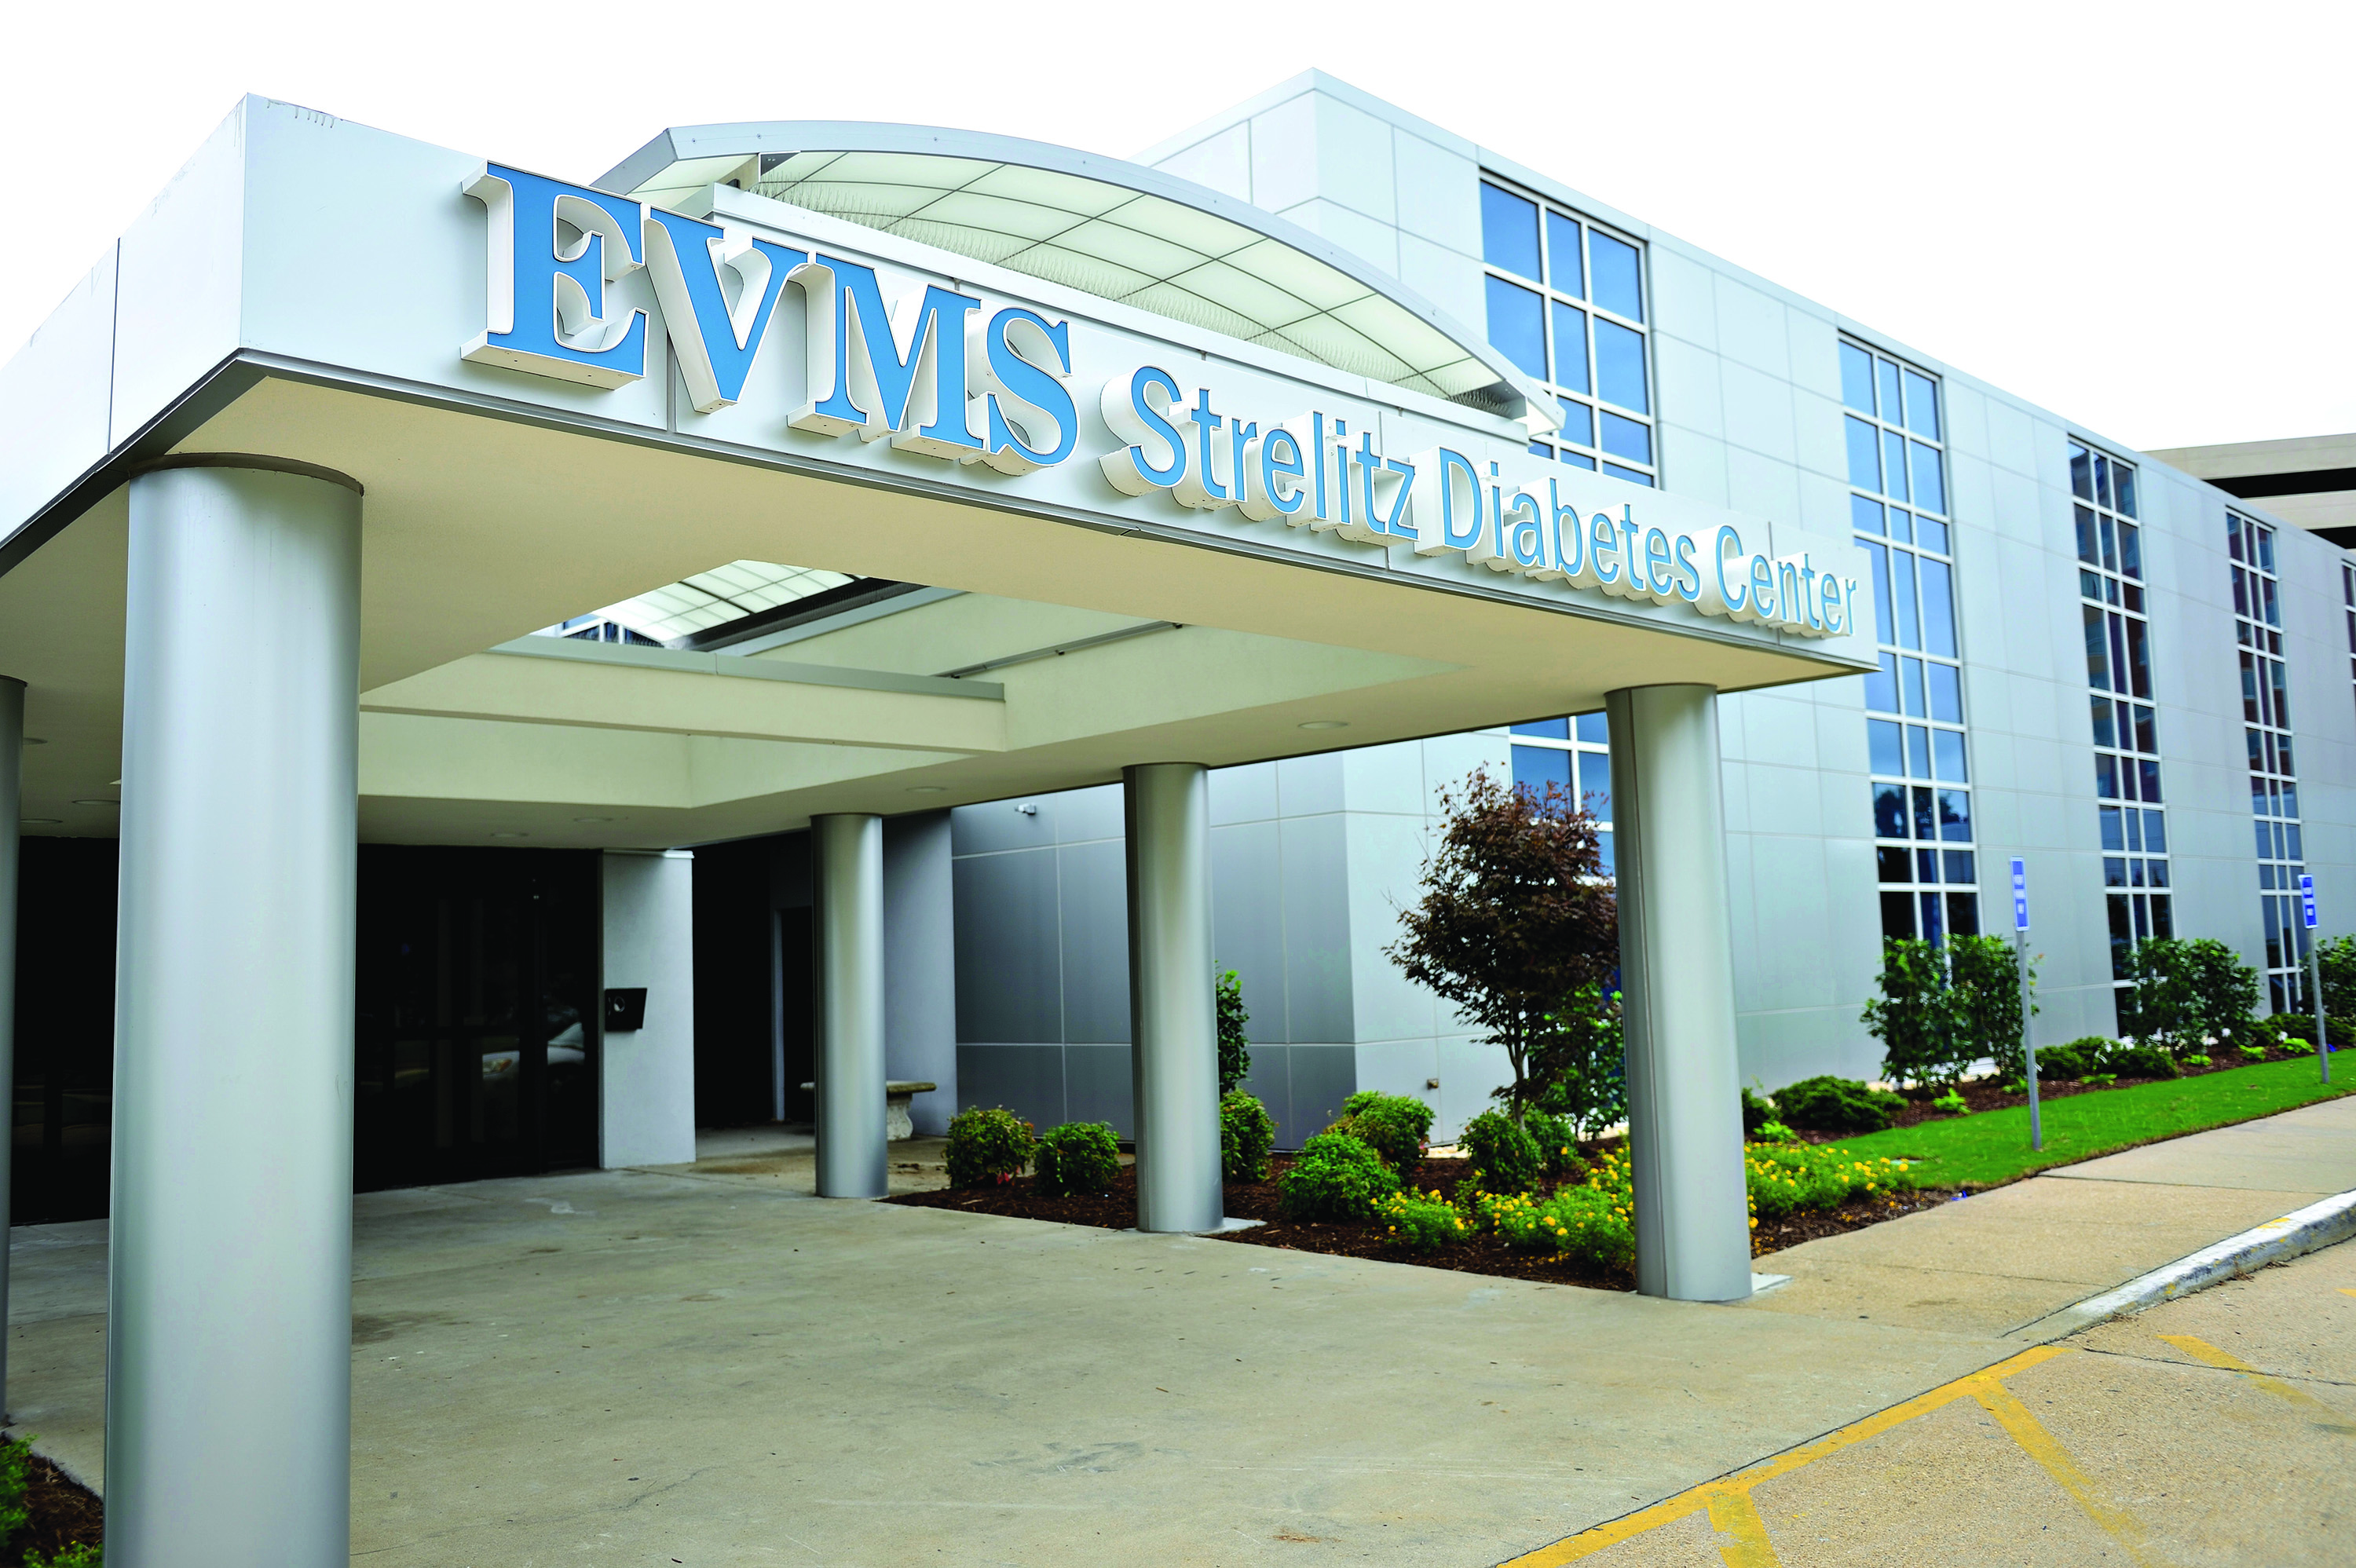 A Canadian university is launching new clinical research based in part on discoveries by EVMS physician-scientists.